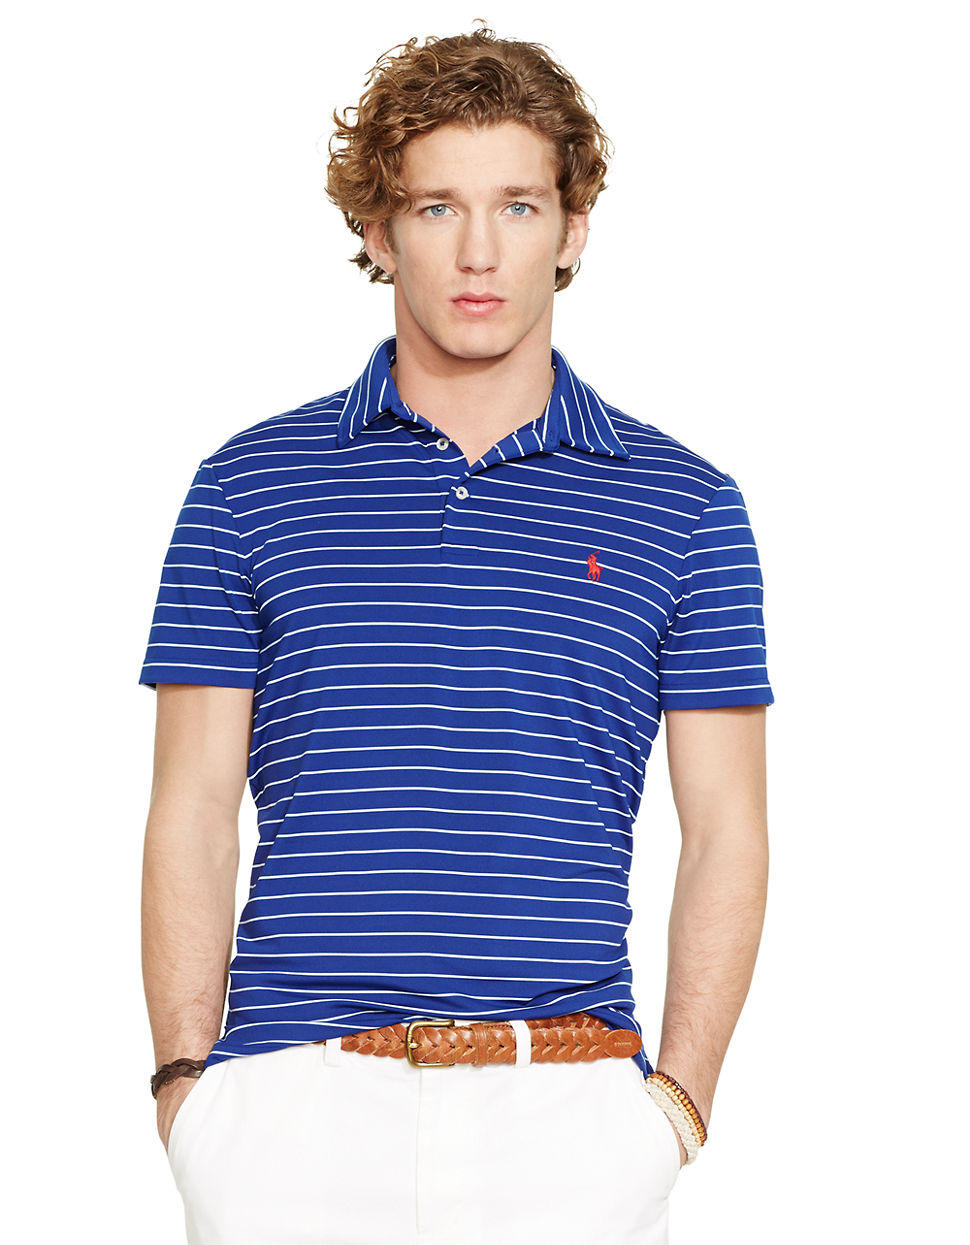 Lyst Polo Ralph Lauren Striped Performance Polo Shirt In